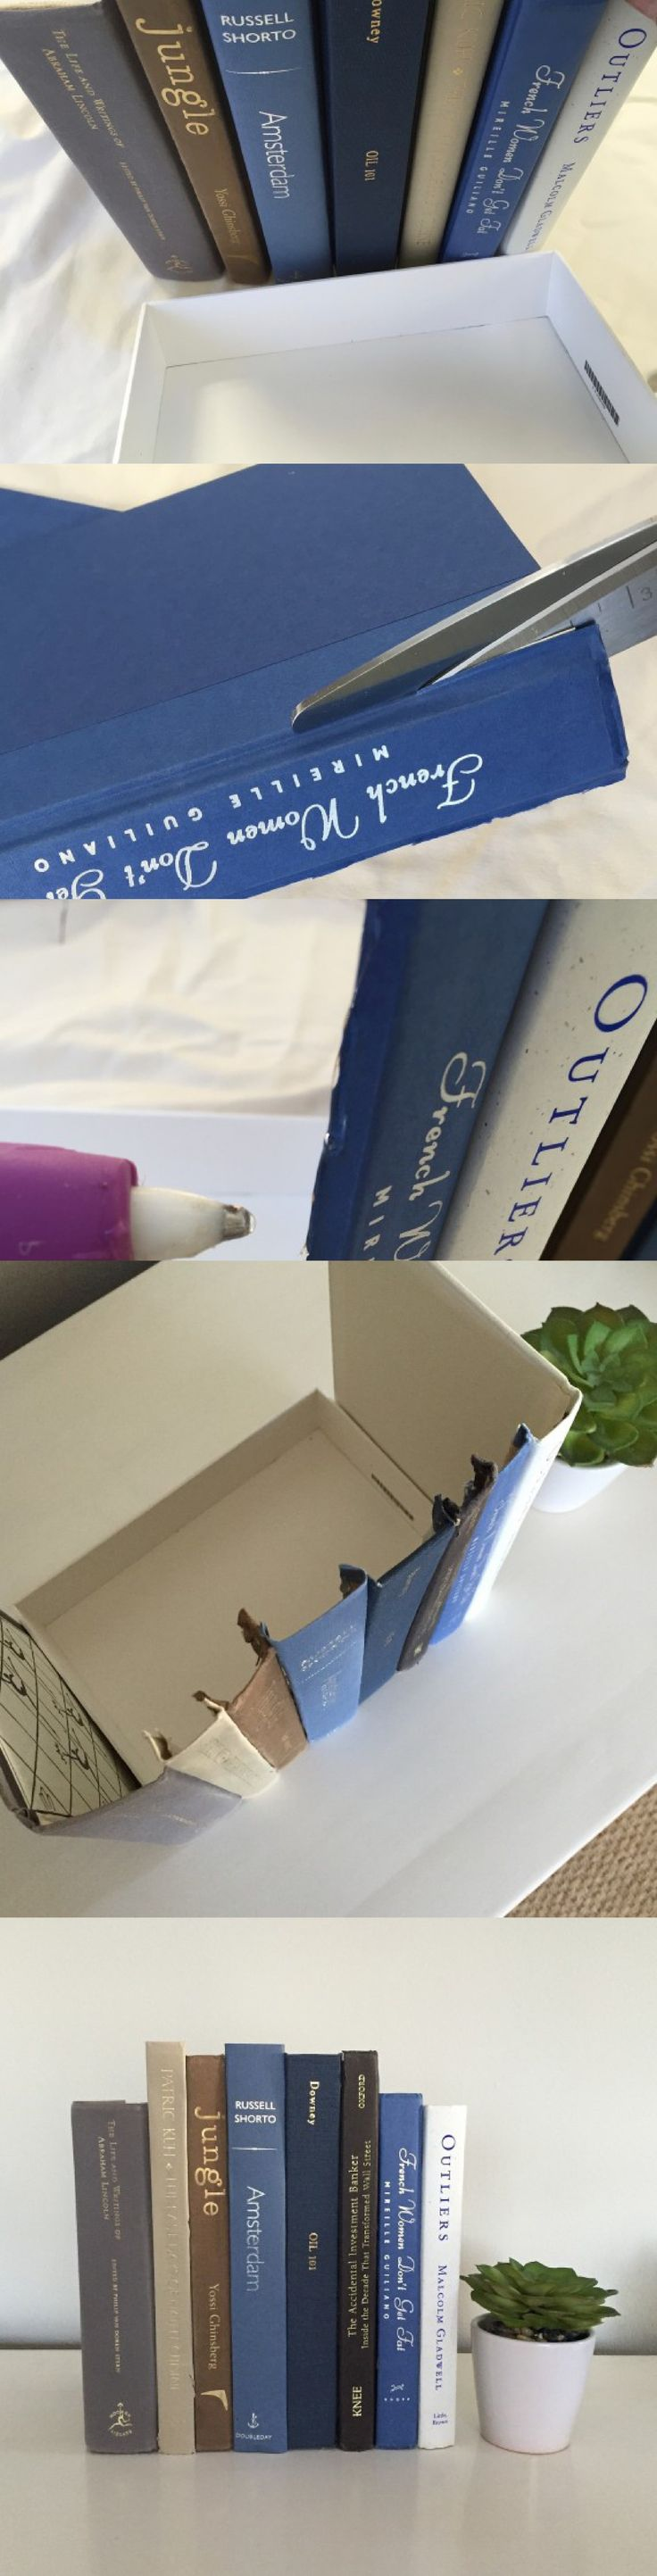 A Clever Way to Hide Clutter: Behind Fake Books! | Martha Stewart Living - Are…